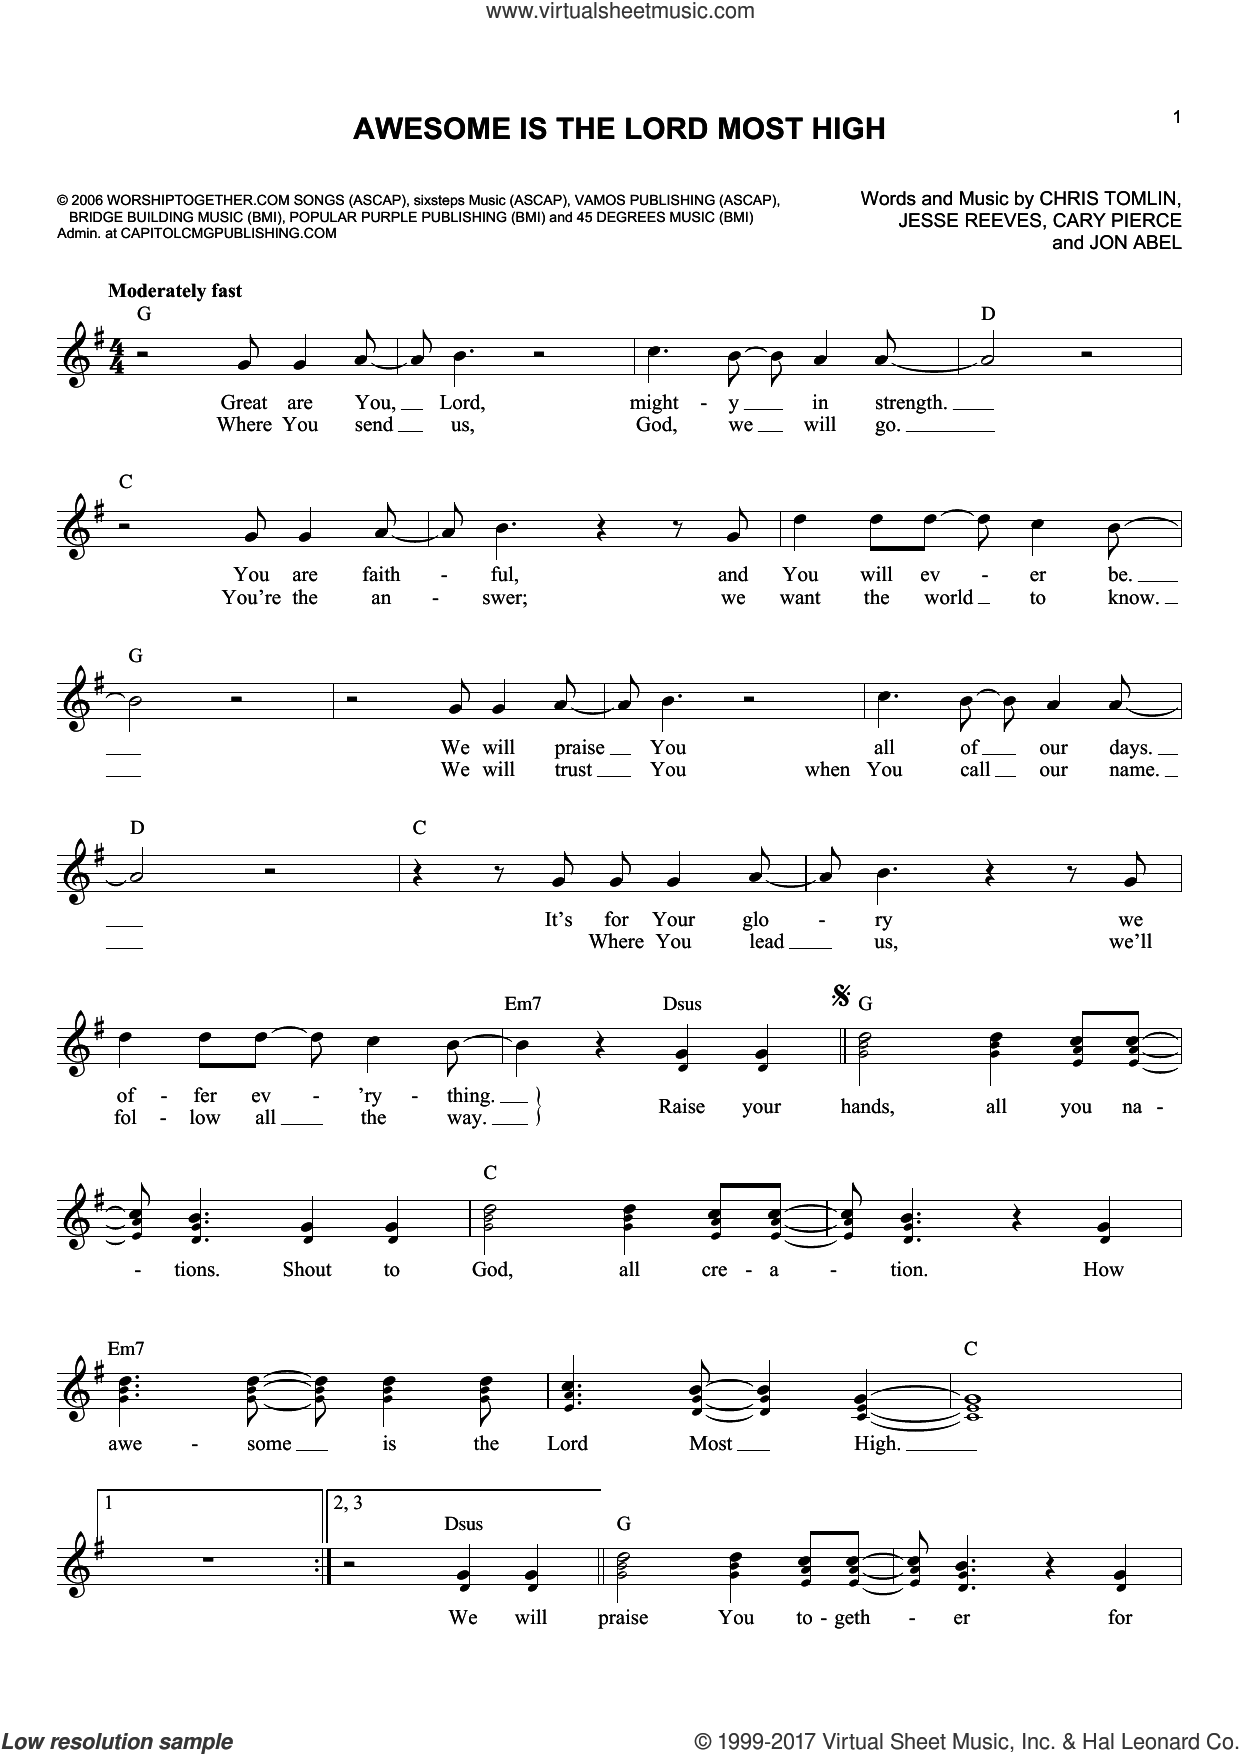 Awesome Is The Lord Most High sheet music for voice and other instruments (fake book) by Brenton Brown, Cary Pierce, Chris Tomlin, Jesse Reeves and Jon Abel, intermediate. Score Image Preview.